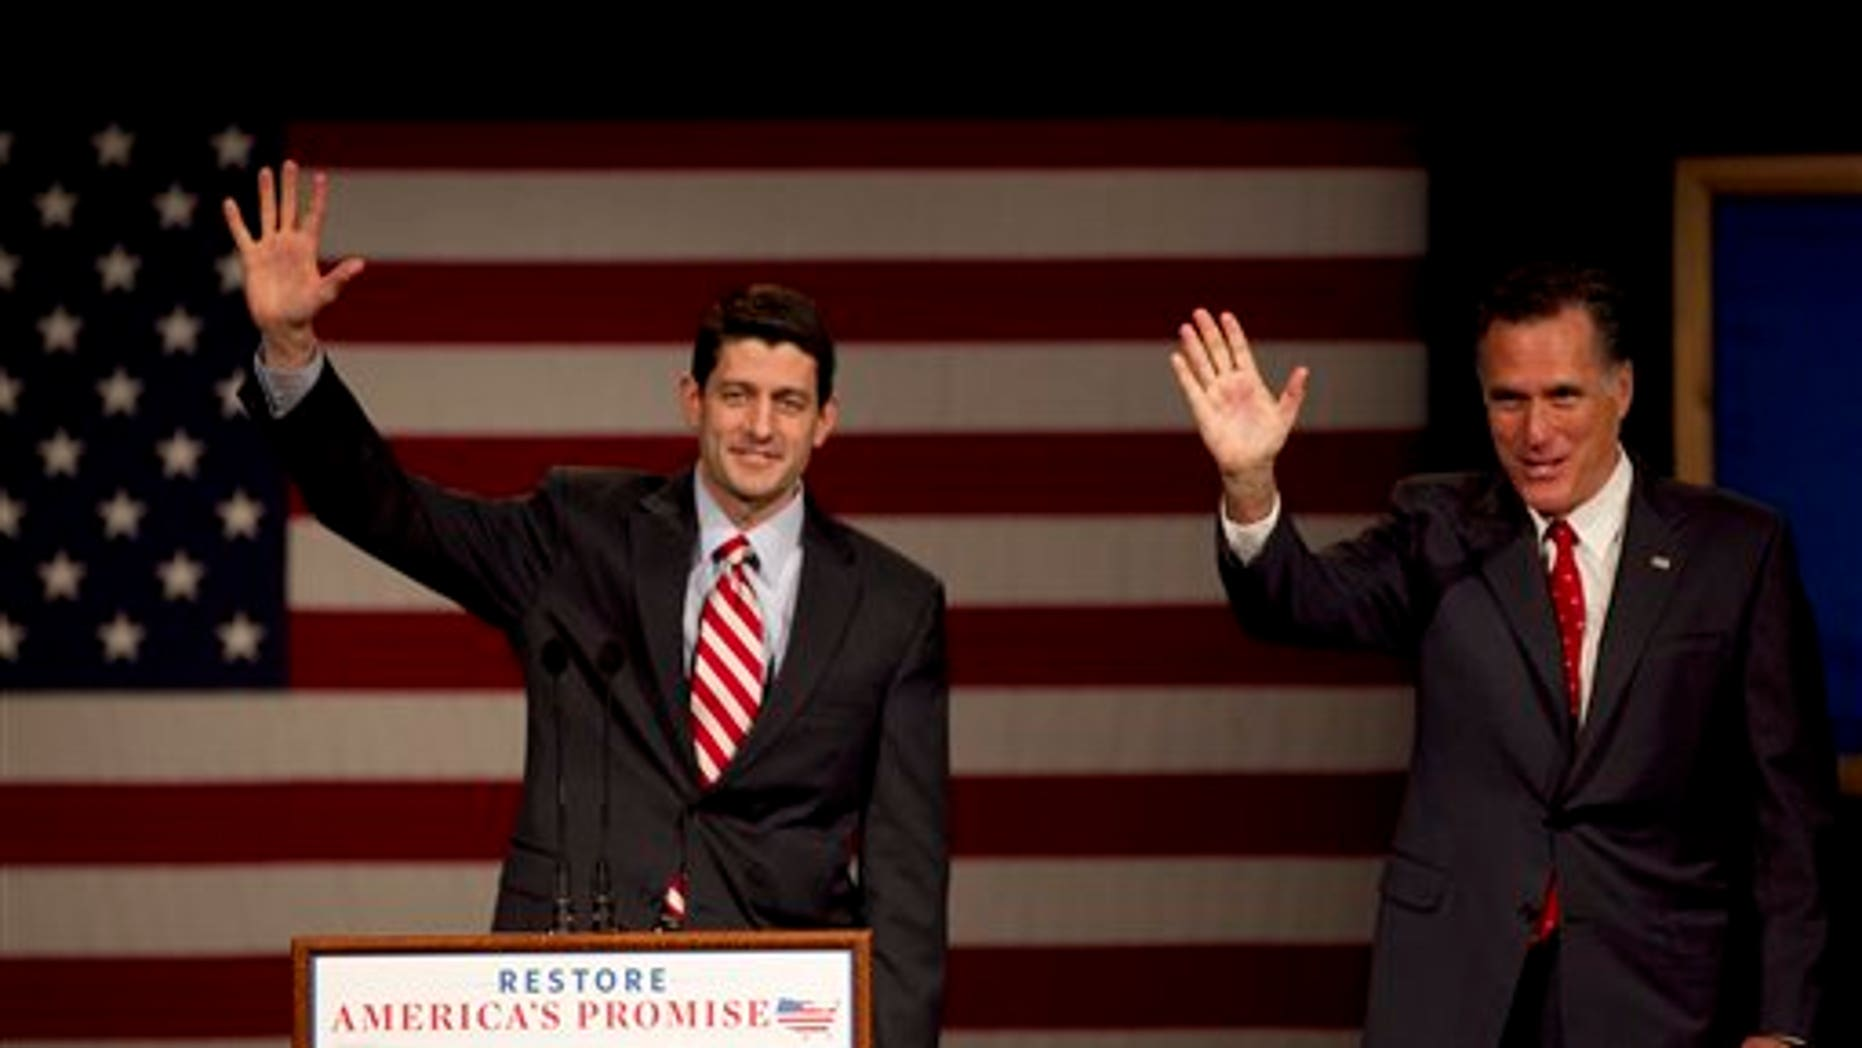 March 30: U.S. Rep. Paul Ryan, R-Wis., Chairman of the House Budget Committee, left, and GOP presidential candidate, former Massachusetts Gov. Mitt Romney wave to the audience as Romney takes the stage during a campaign stop on the campus of Lawrence University, in Appleton, Wis.